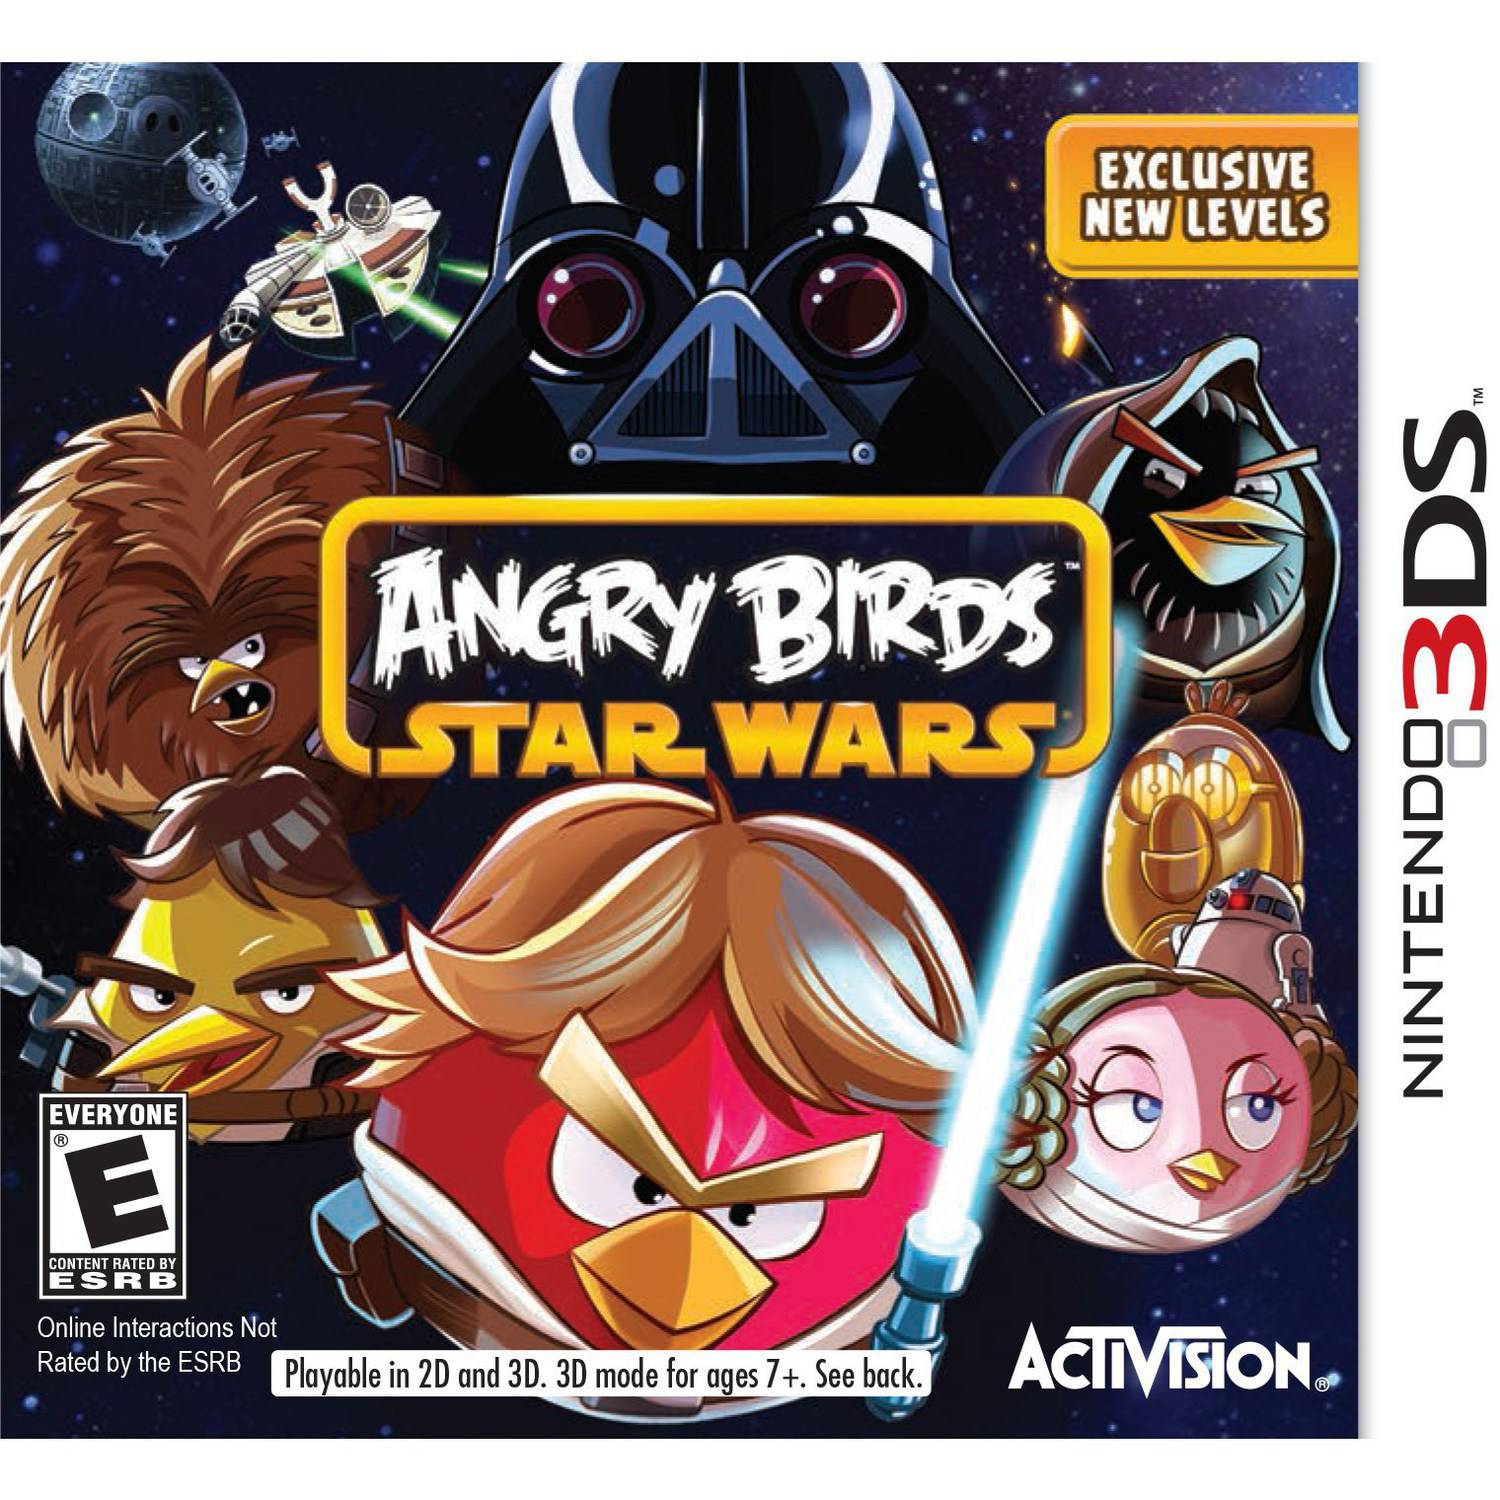 Angry Birds: Star Wars (Nintendo 3DS) - Pre-Owned